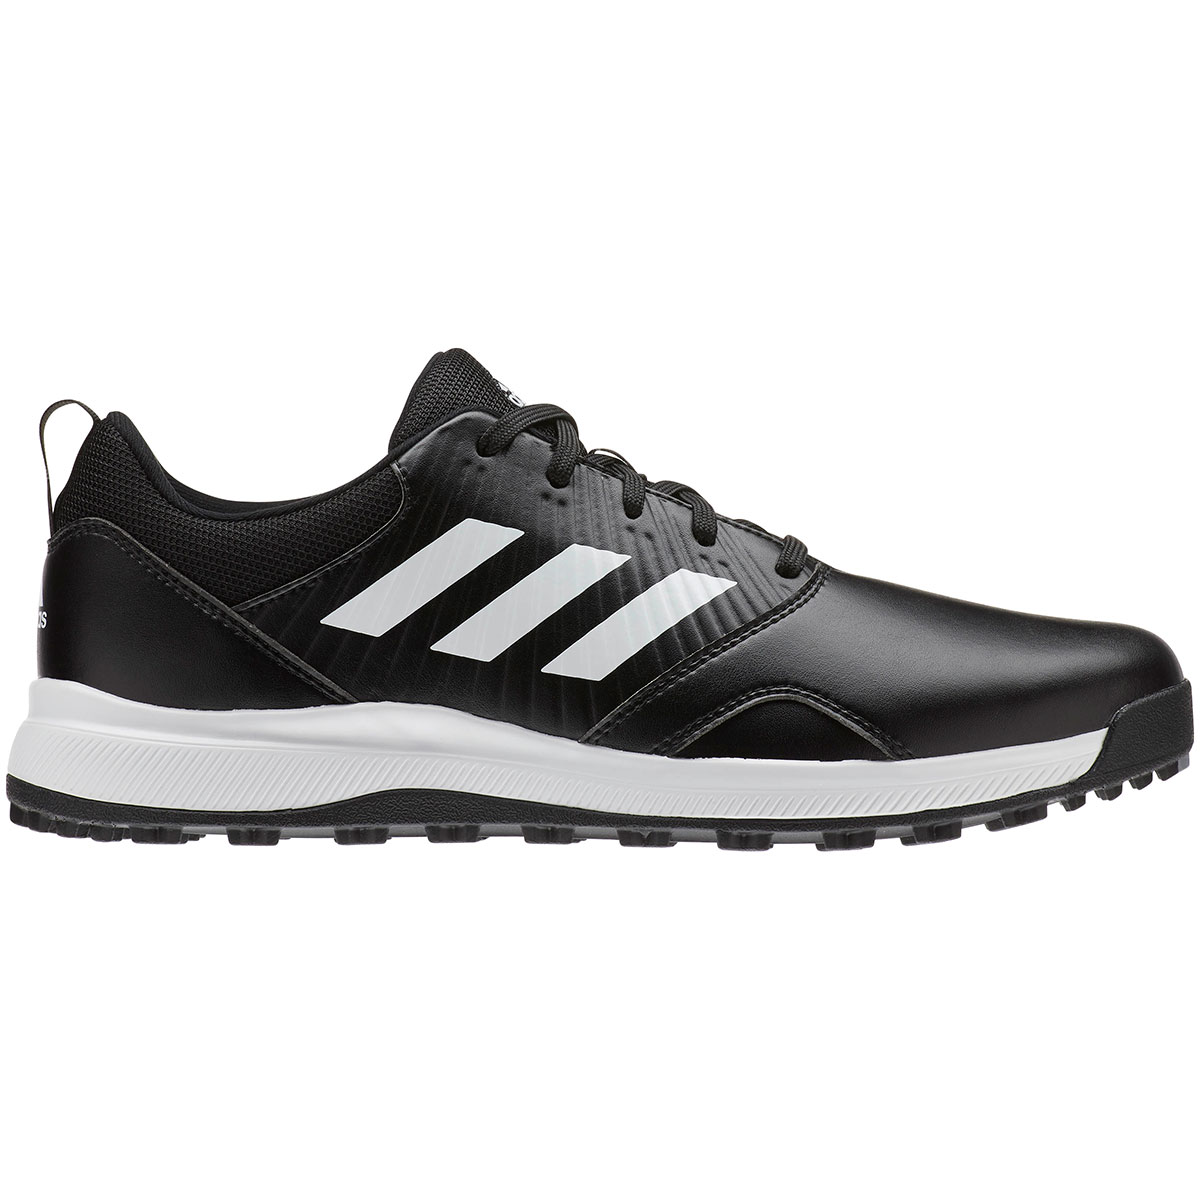 Adidas Men's CP Traxion Spikeless Black/White Golf Shoe